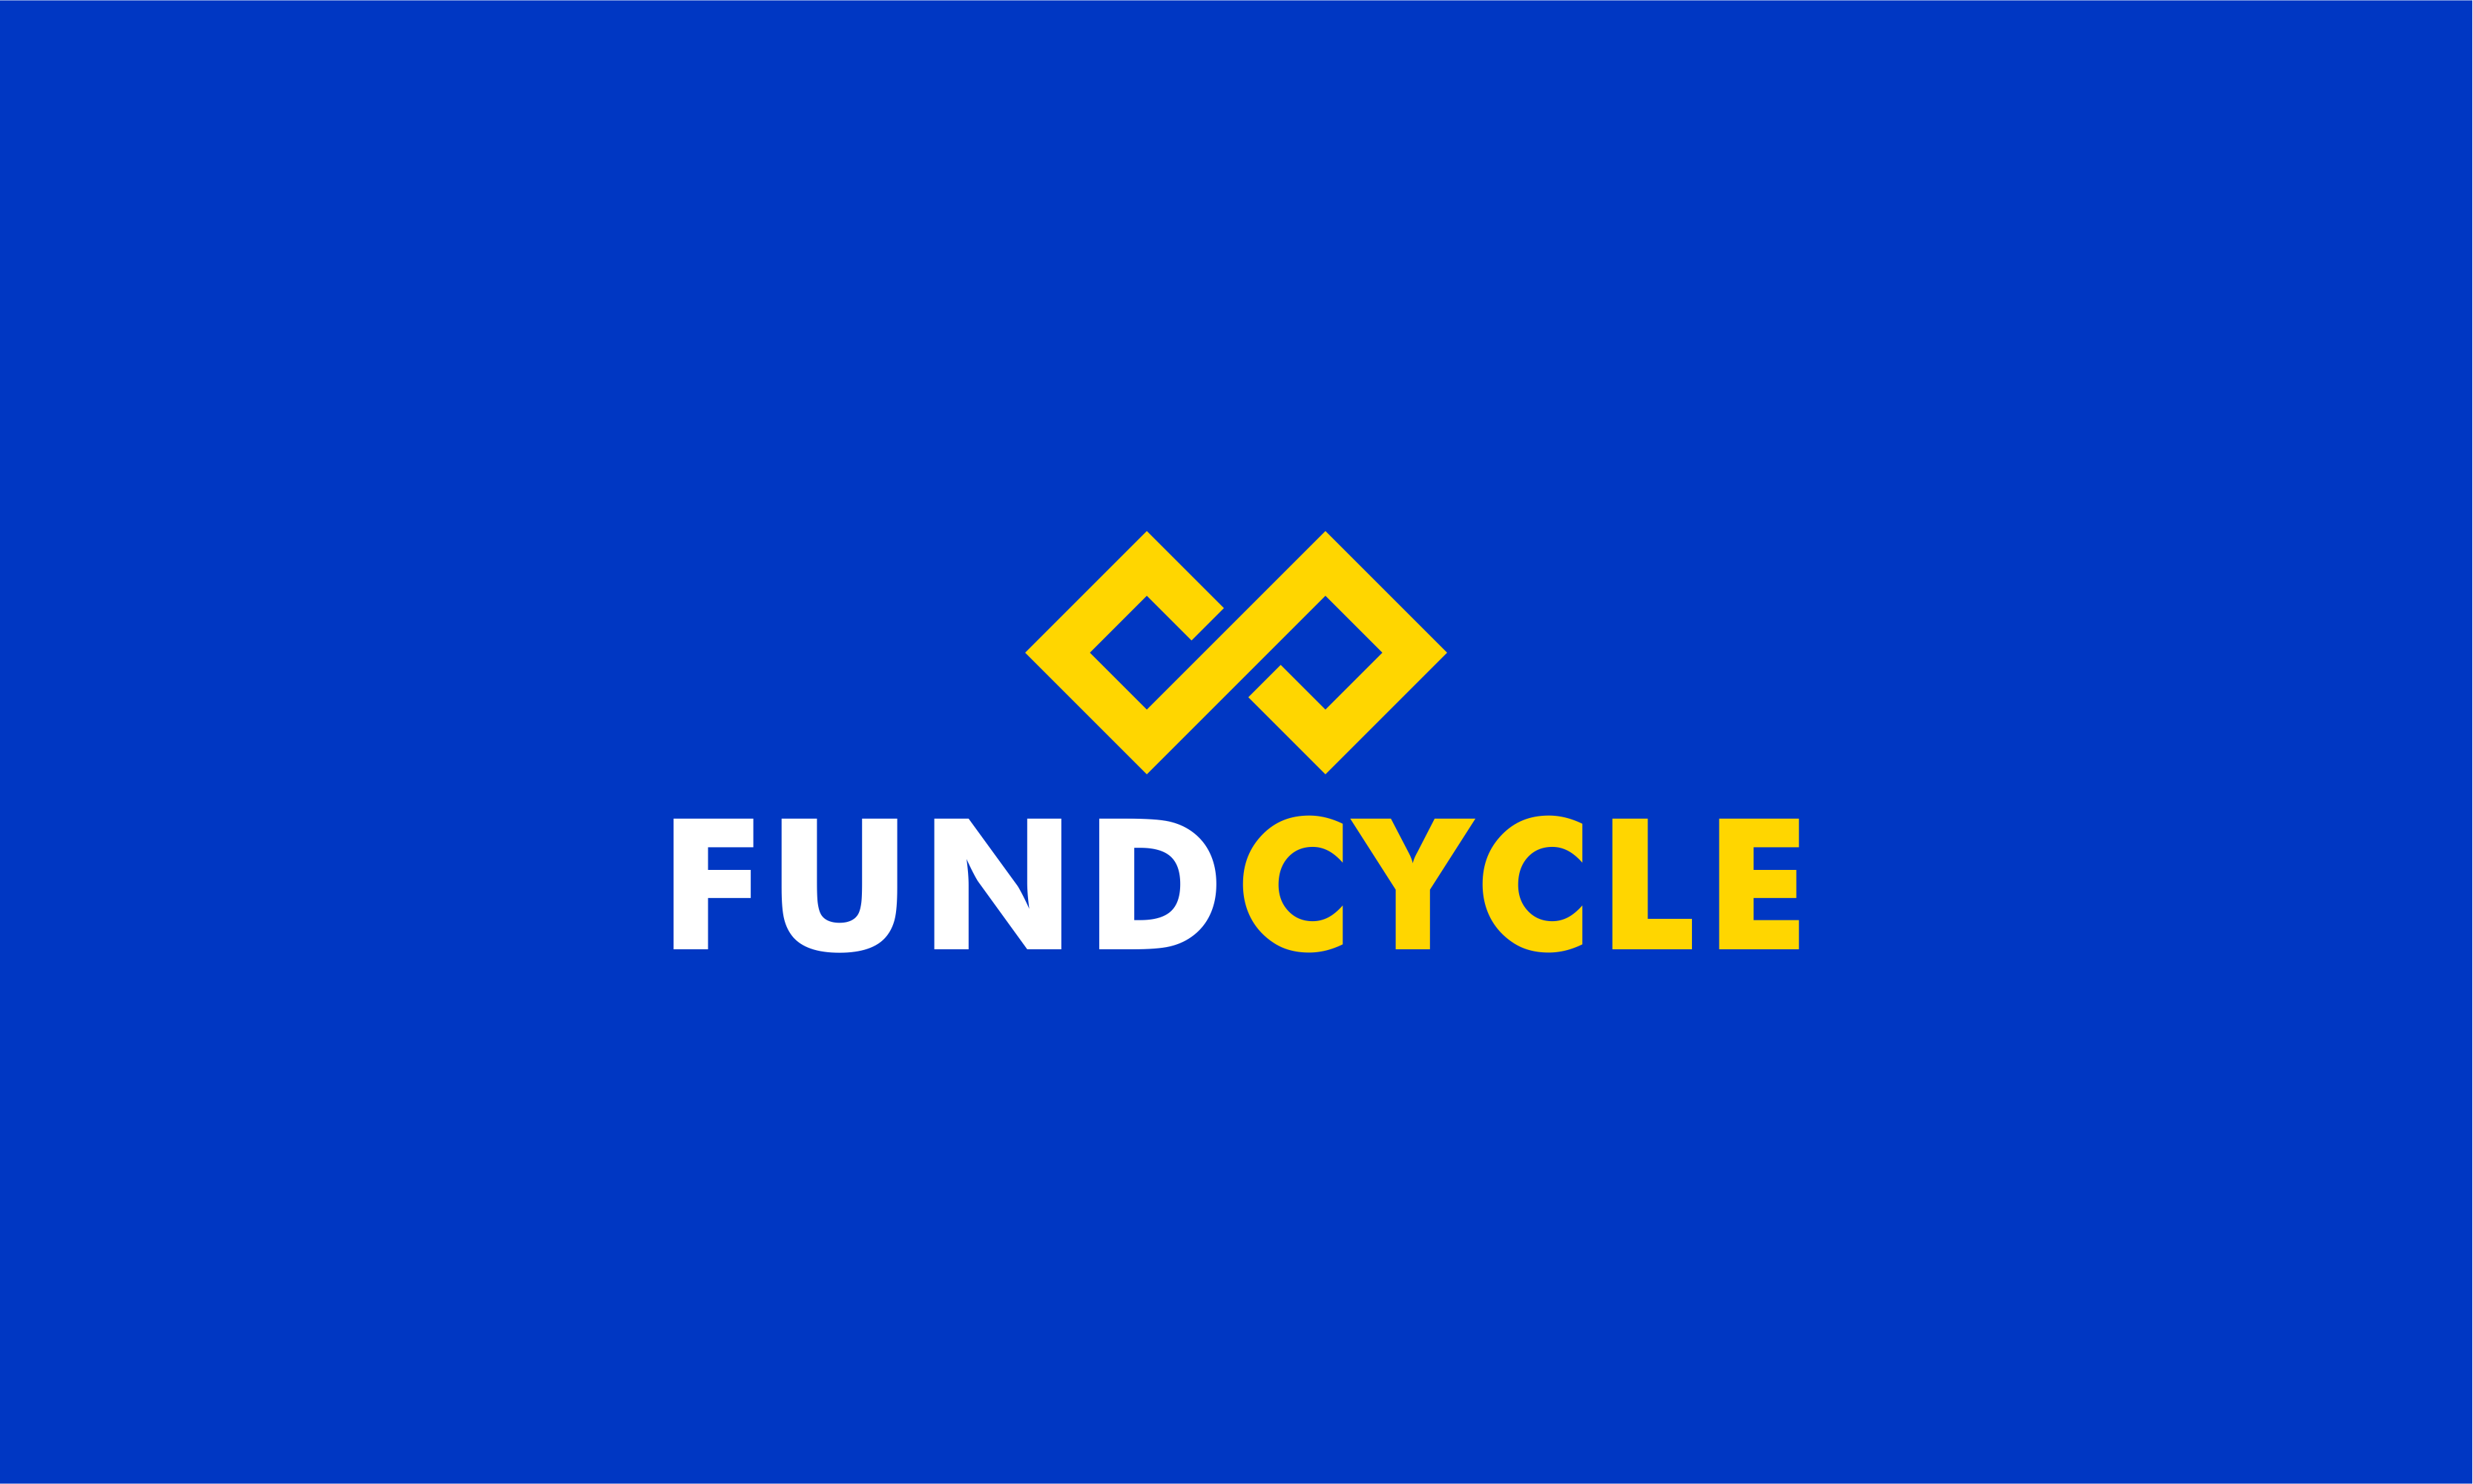 Fundcycle